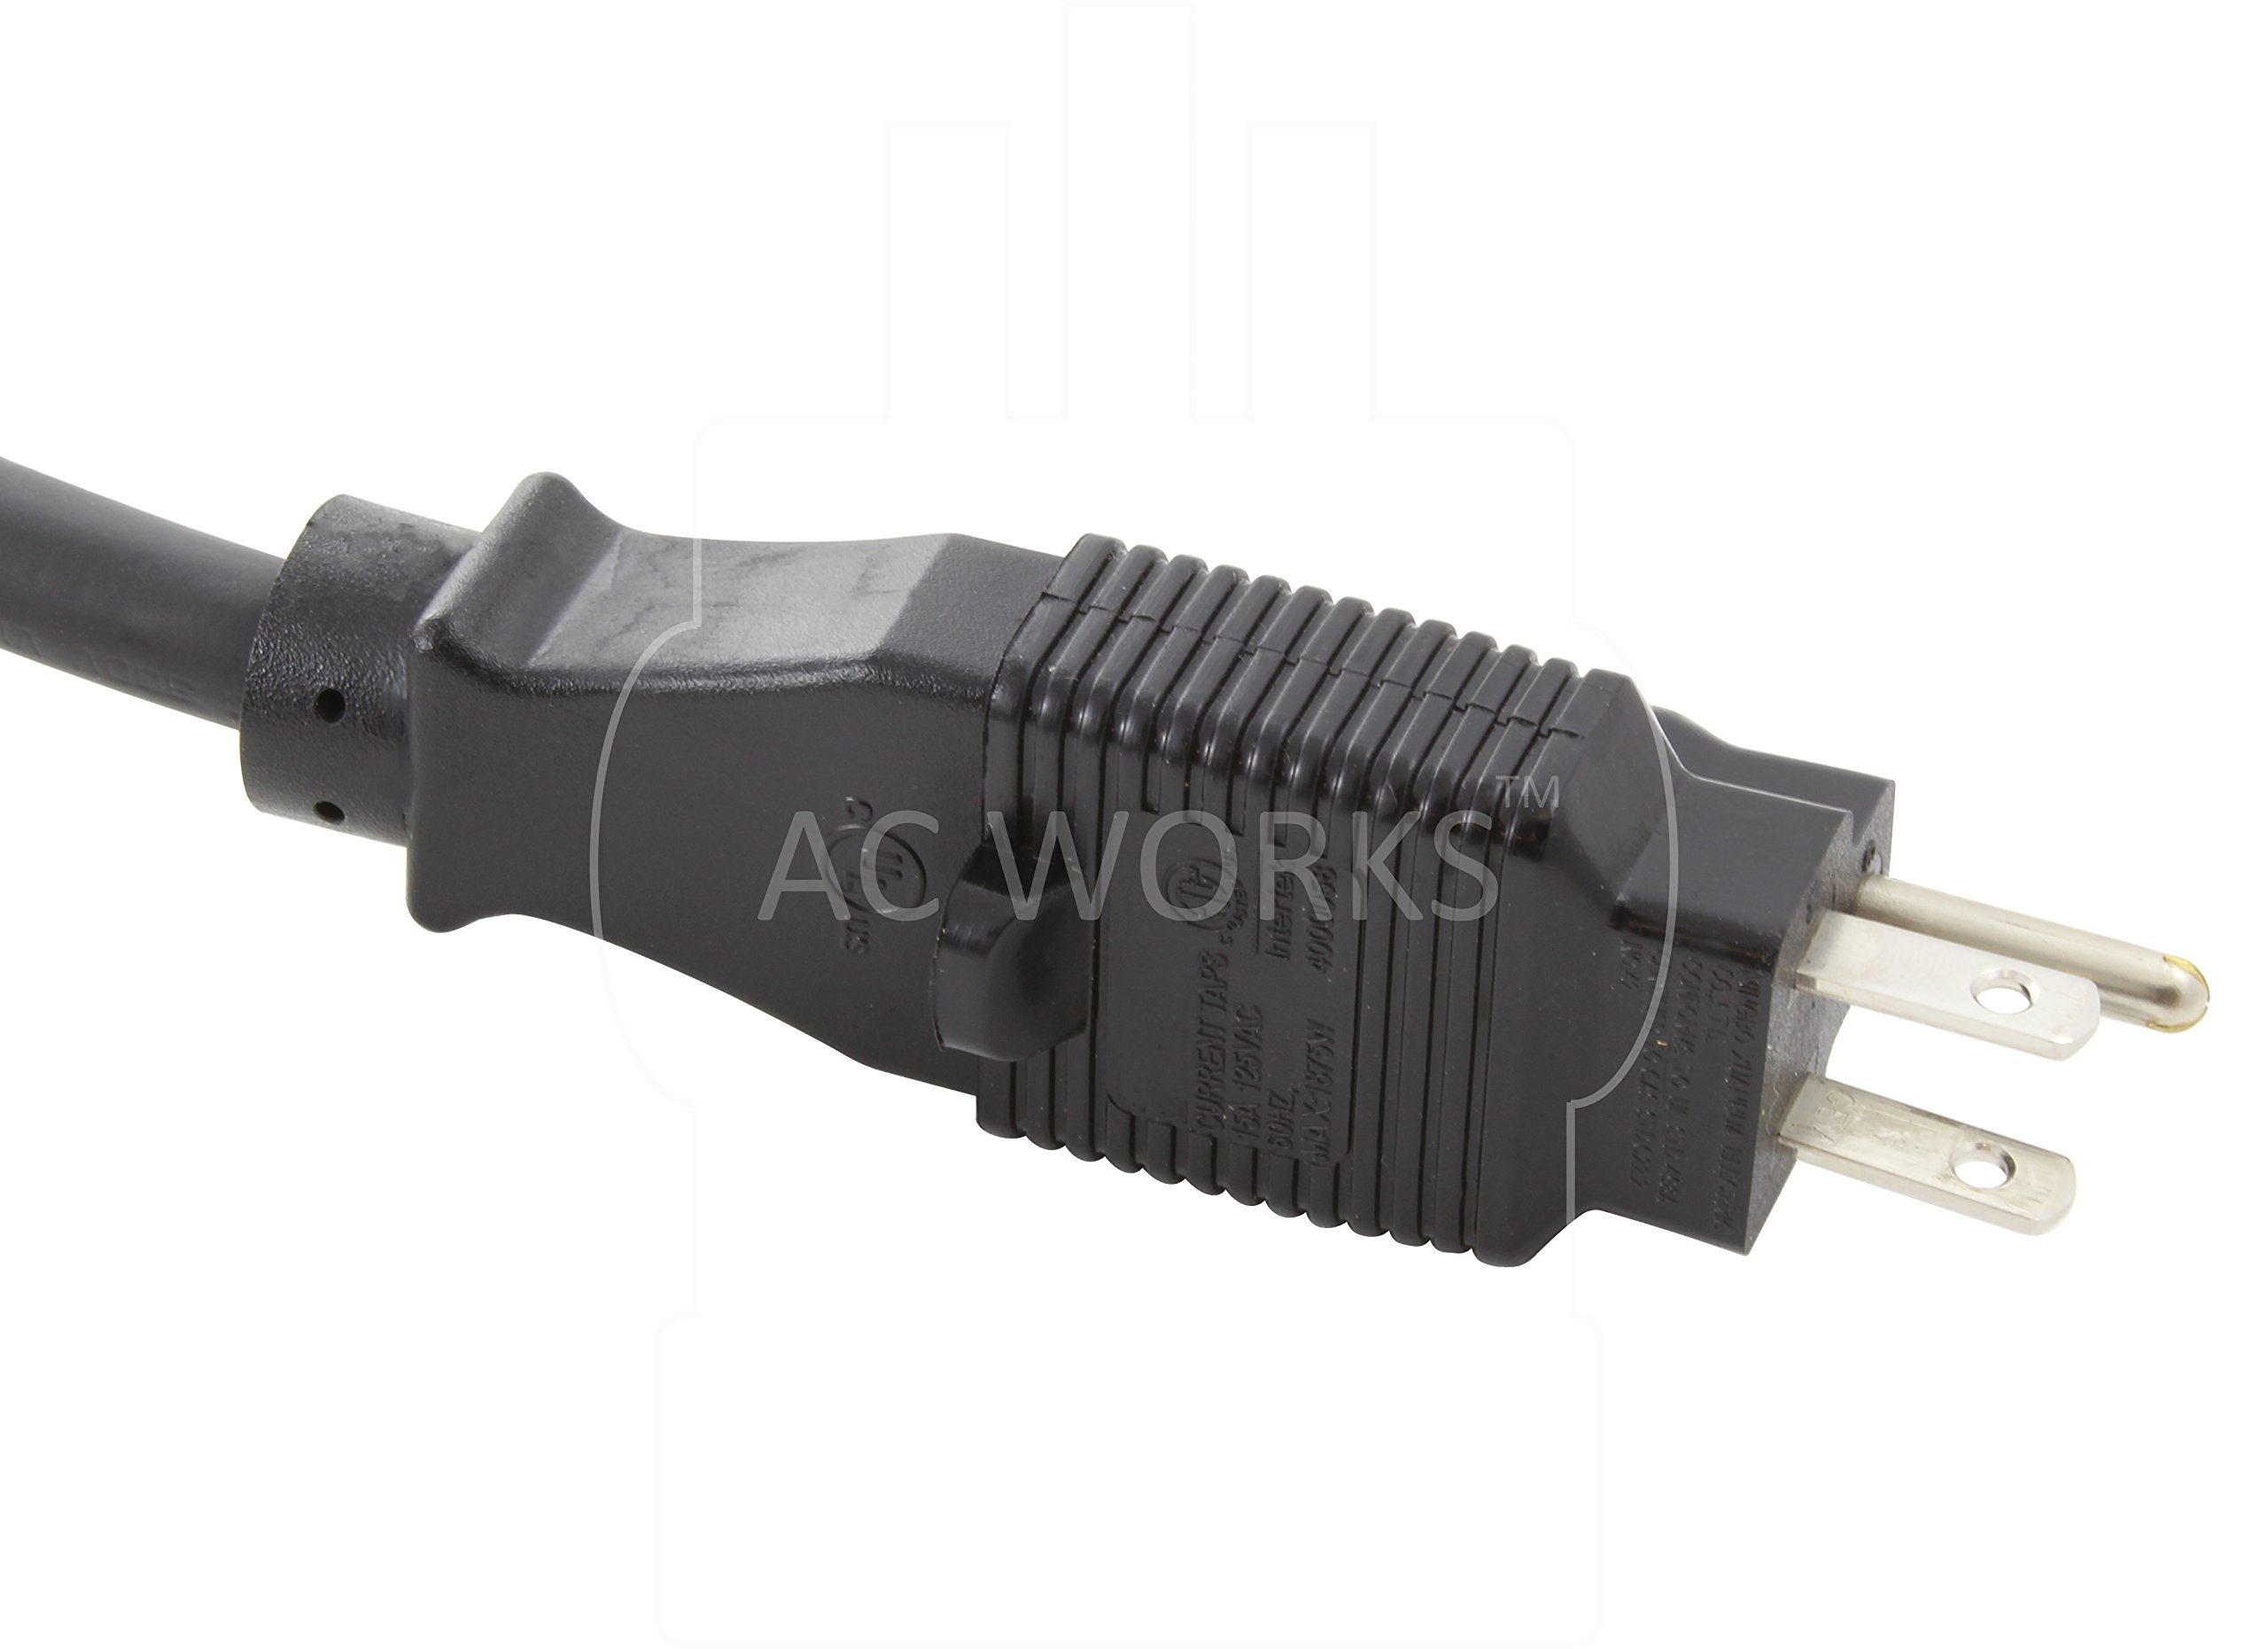 AC WORKS 15 to 20Amp 125Volt T-Blade Adapter (10PK-Compact)